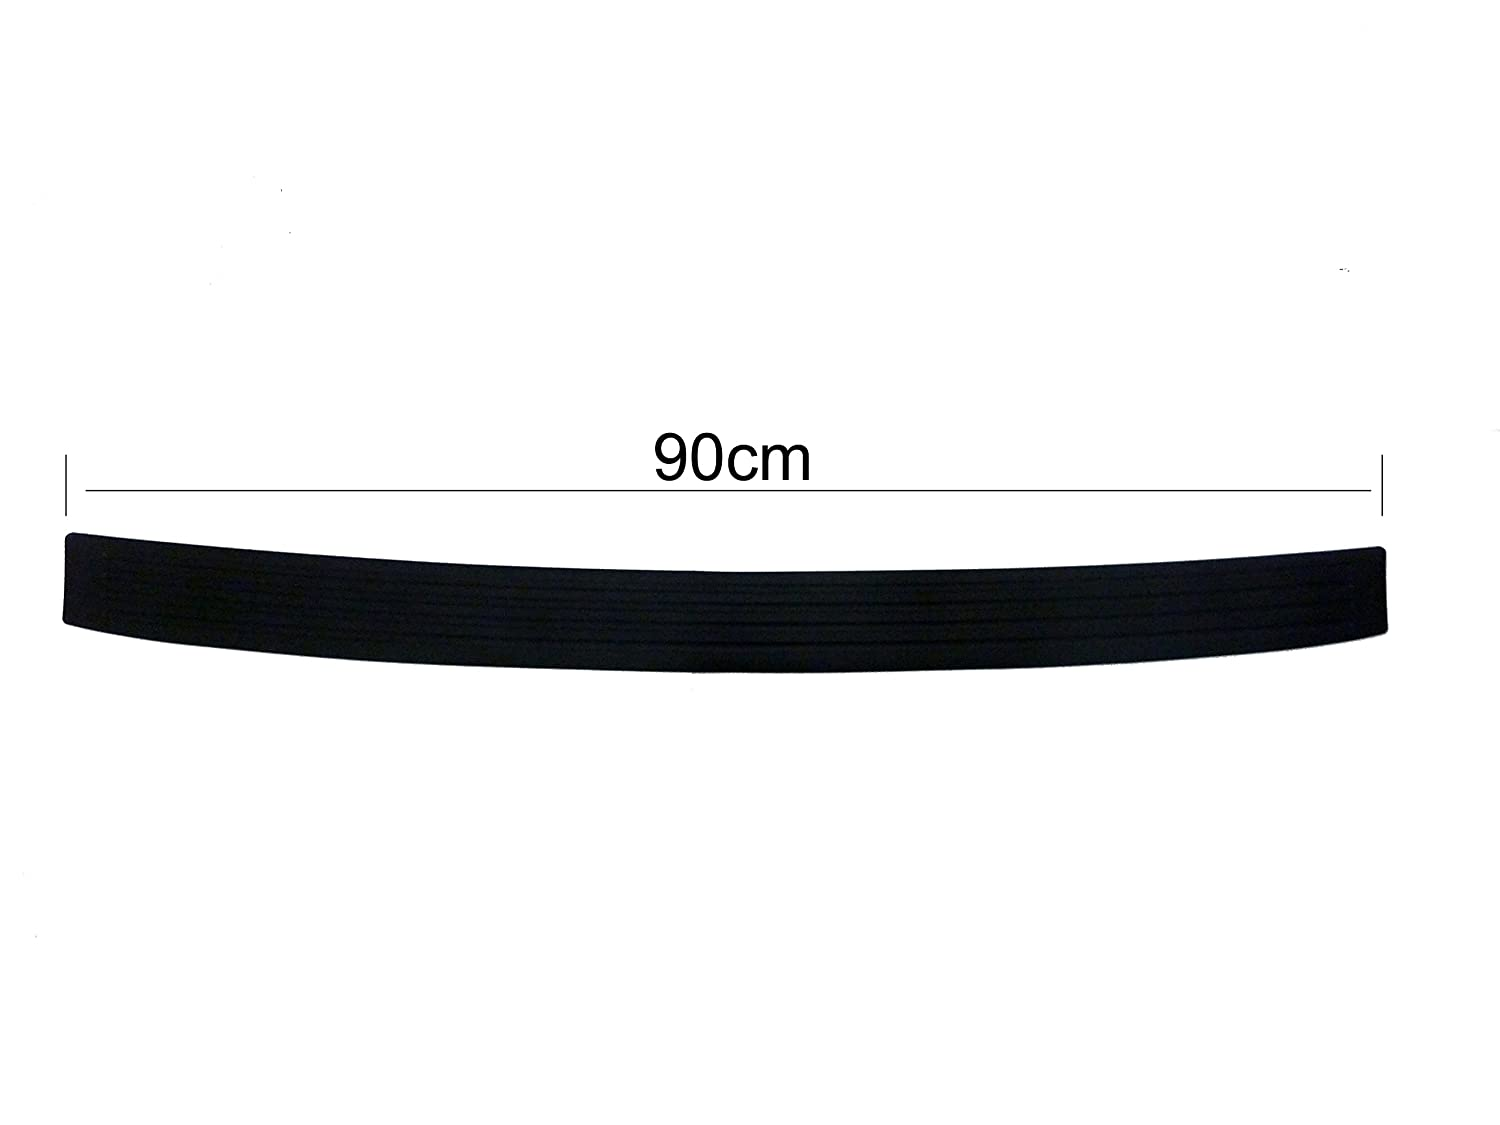 Connected Essentials 5117720 Rubber Car Bumper Protective Strip for Estates and SUV 104cm Long